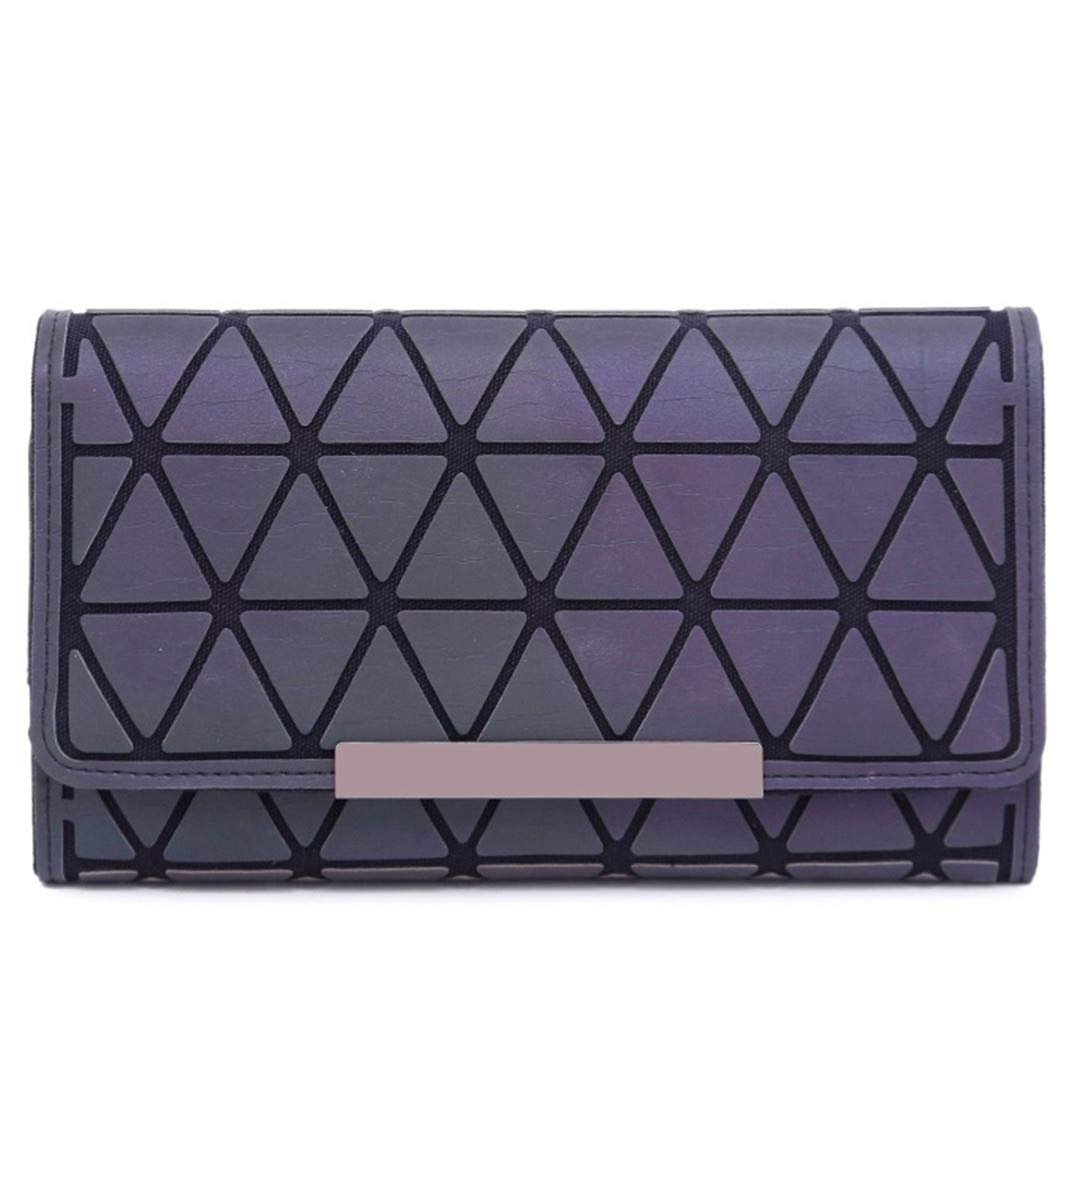 HHXWU Lingge Wallet Geometry Colorful Clutches Womens 30 ...